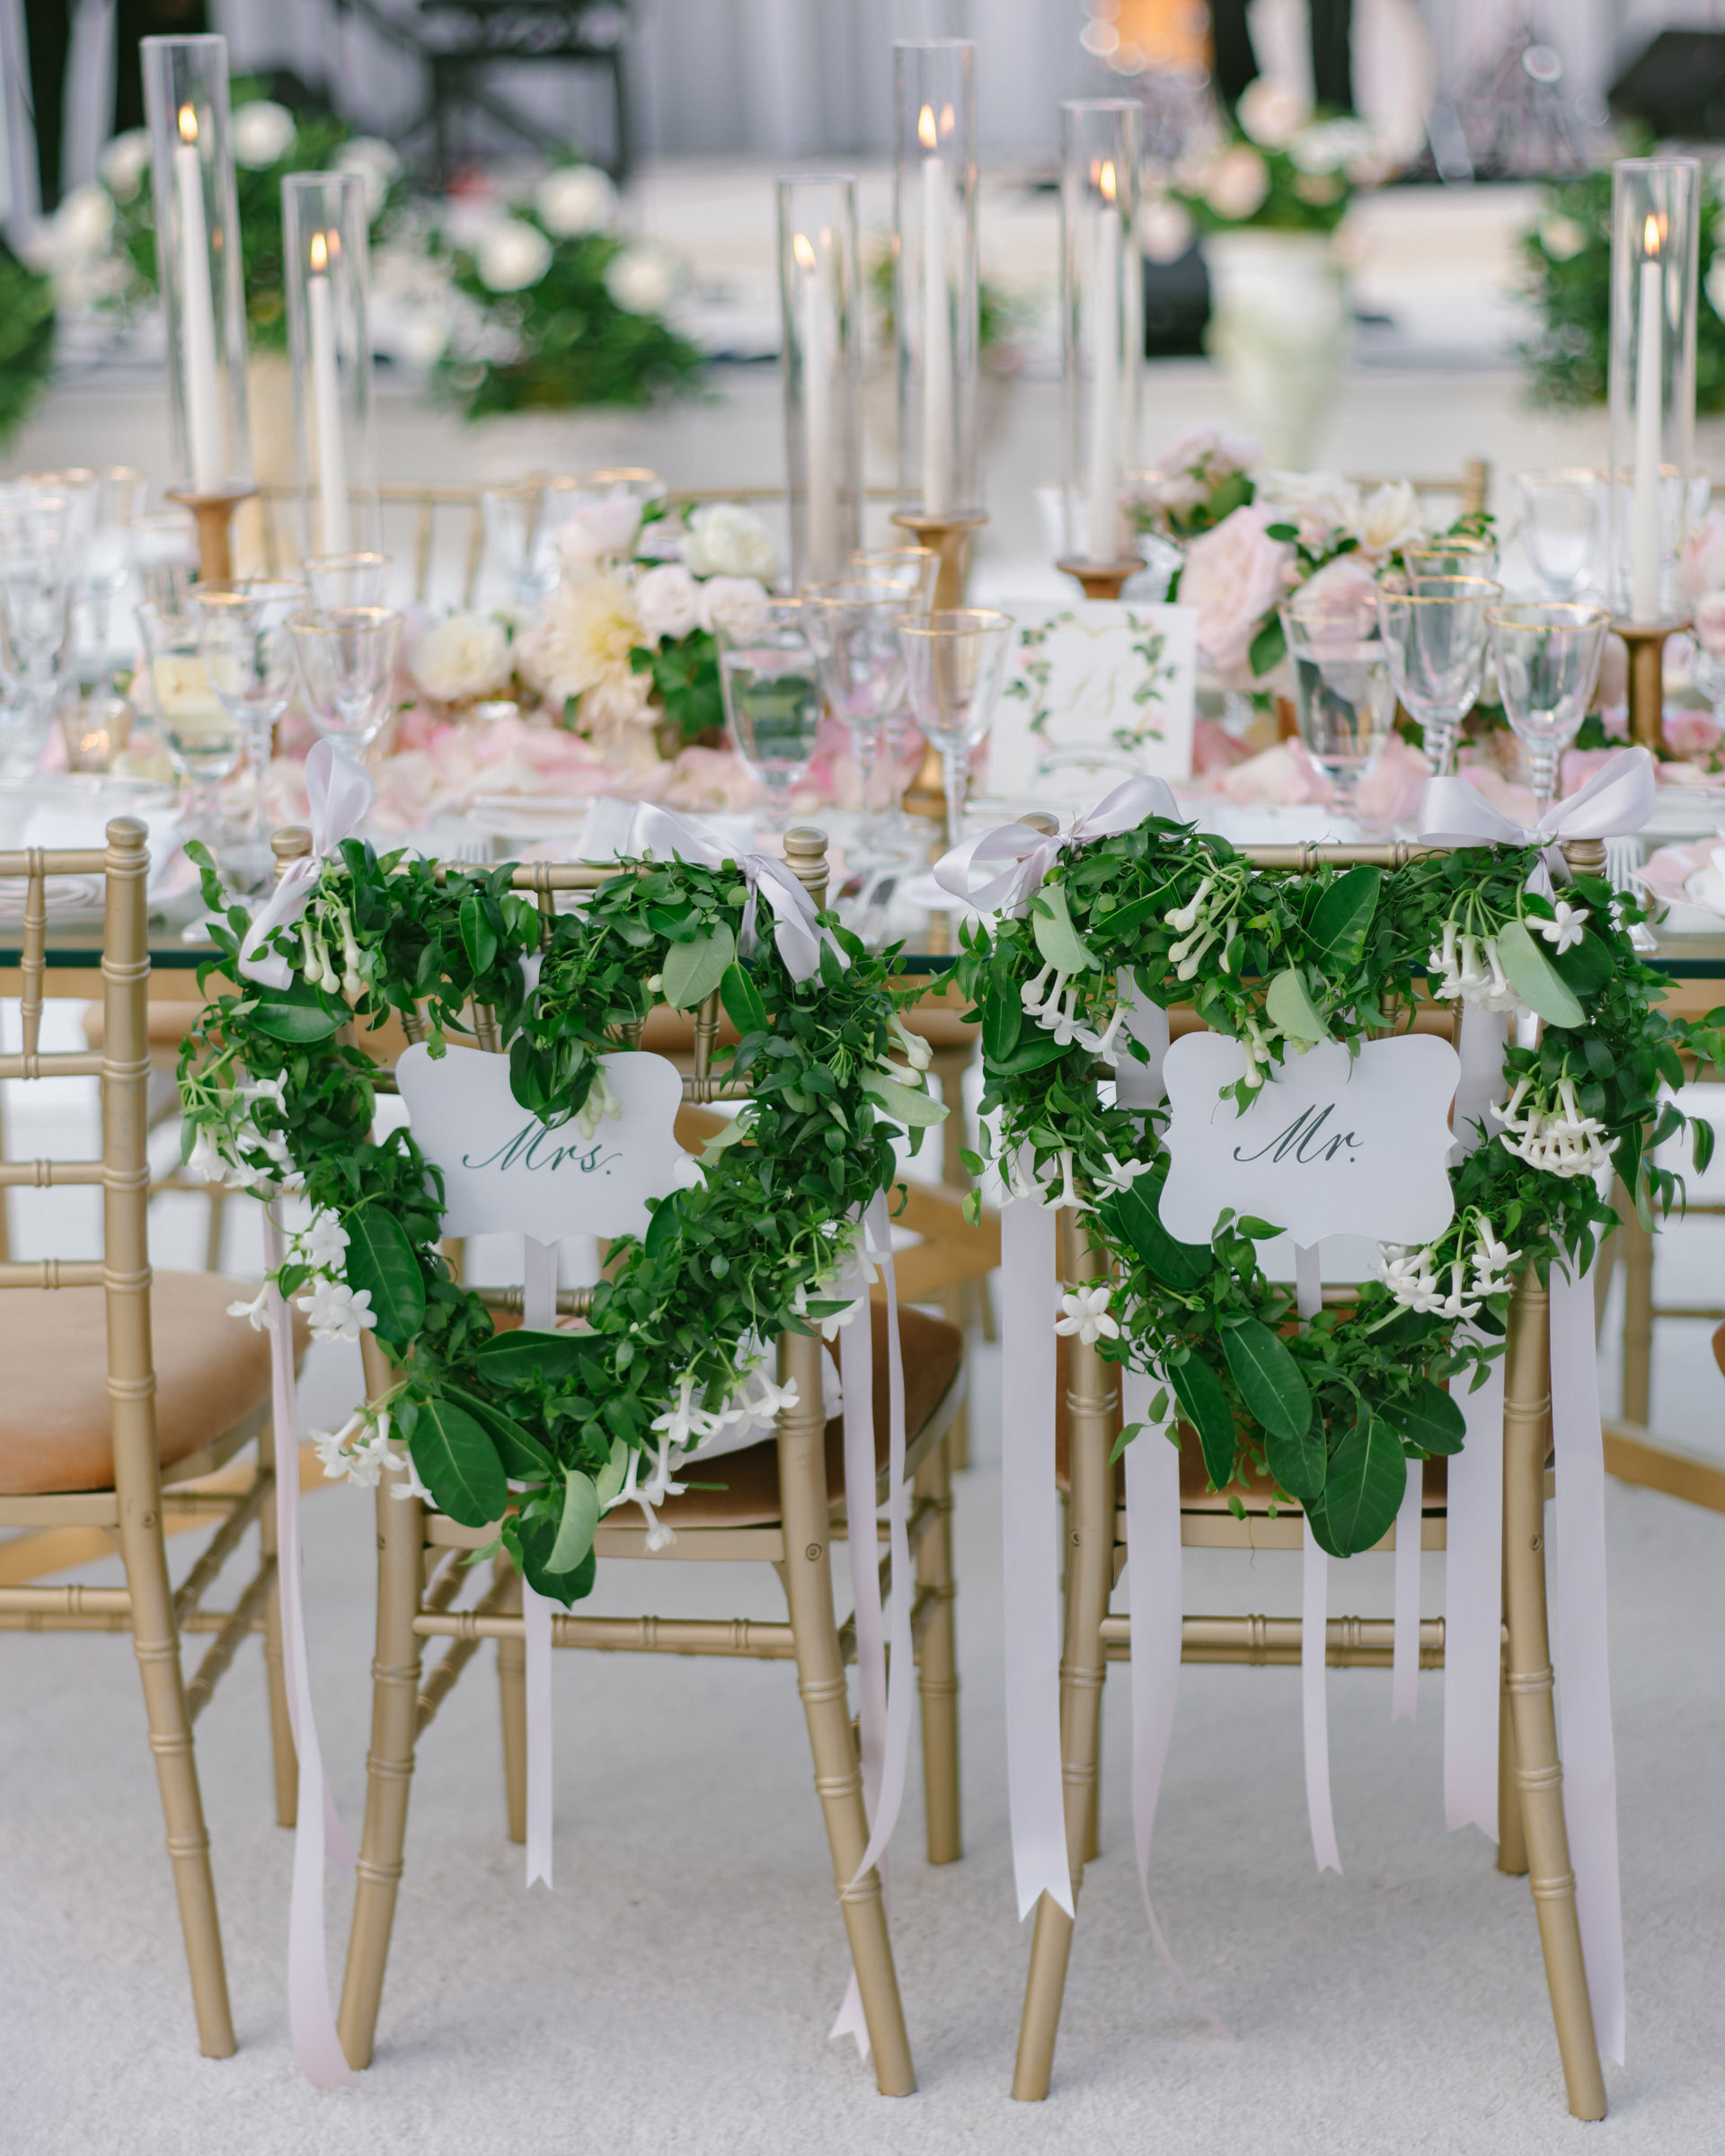 reception-table-settings-with-mr-and-mrs-heart-shaped-chair-wreaths-amyandstuart-photography